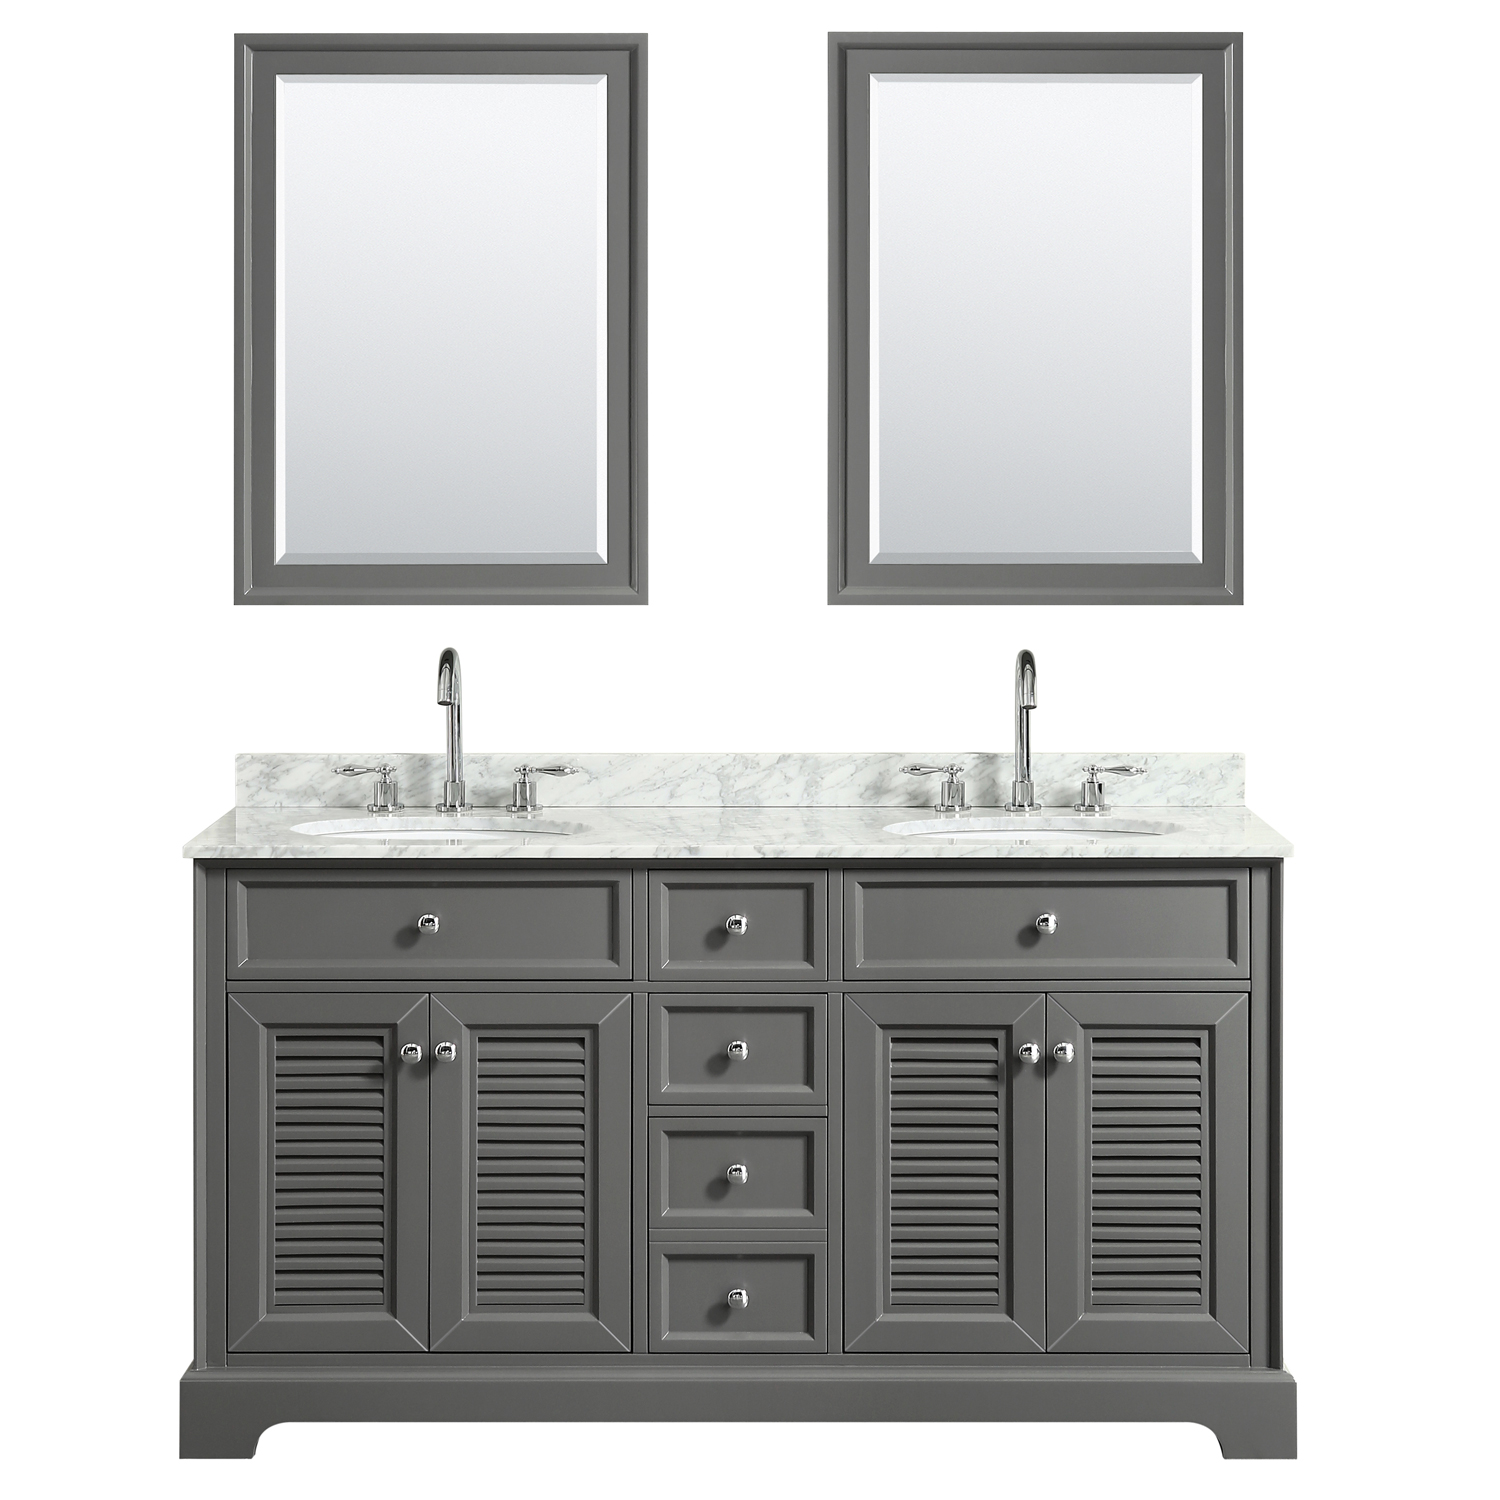 """60"""" Double Bathroom Vanity in White Carrara Marble Countertop with Undermount Sinks, Medicine Cabinet, Mirror and Color Options"""